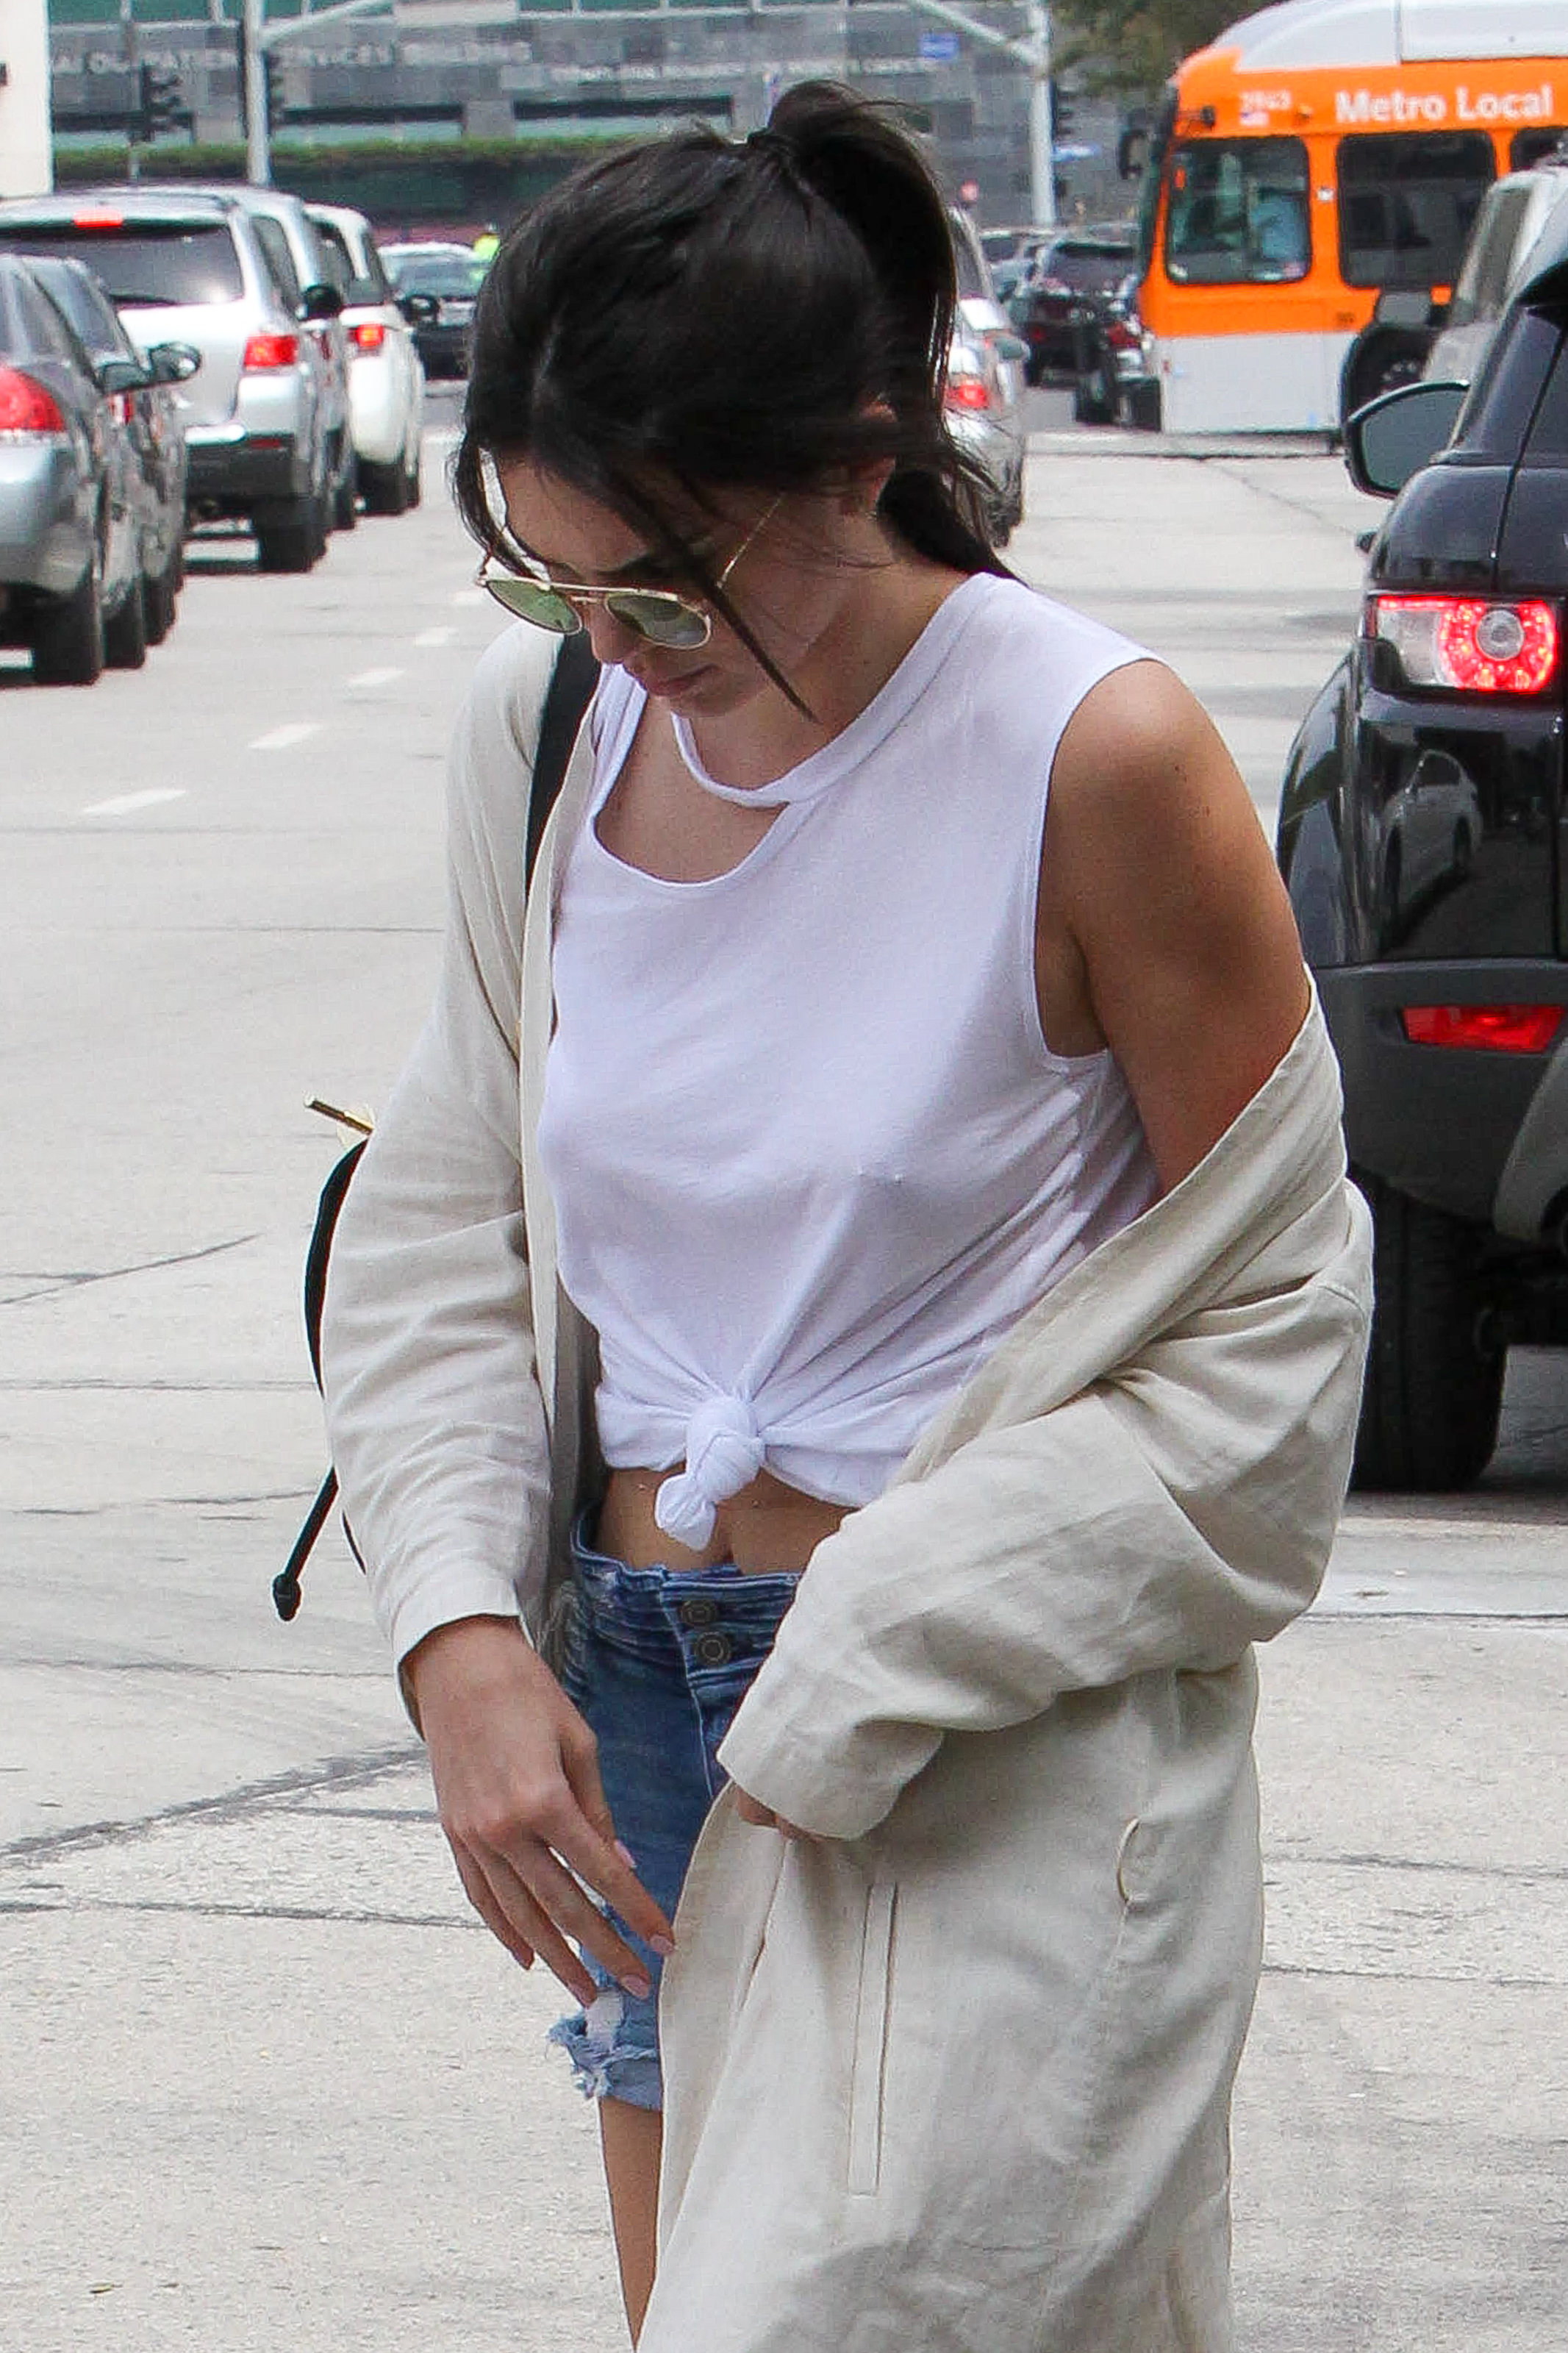 kendall-jenner-nipple-pokes-piercing-while-shopping-03